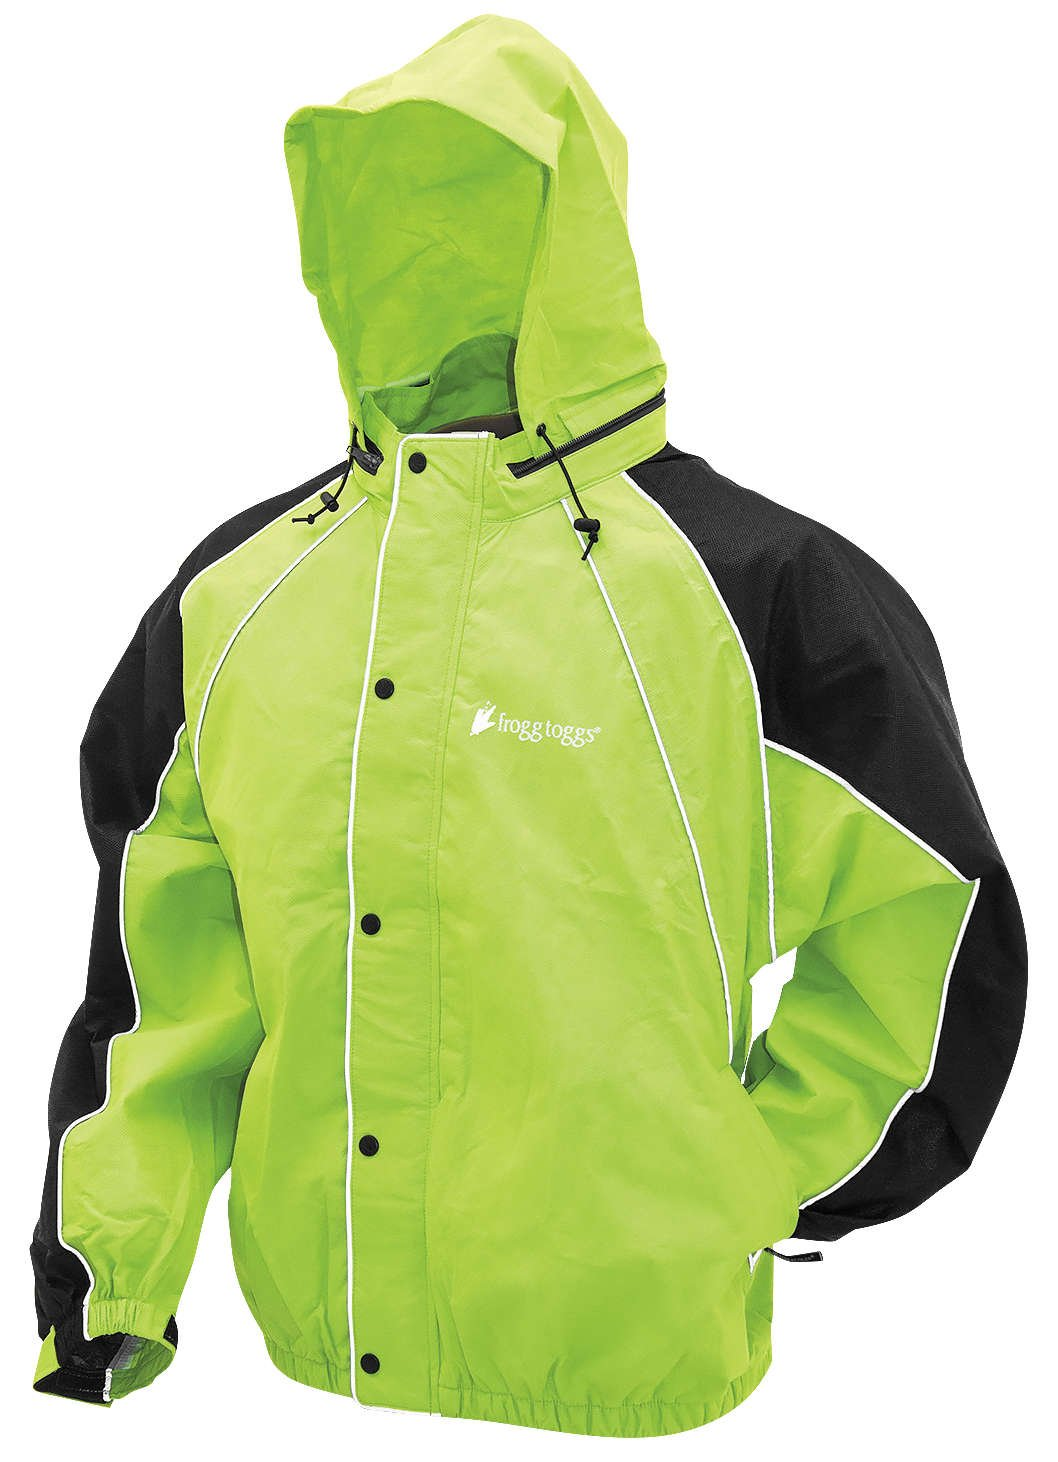 Frogg Toggs FT10322-481-MD Hogg Togg Rainsuit (Hi-Vis/Black, Medium) by Frogg Toggs